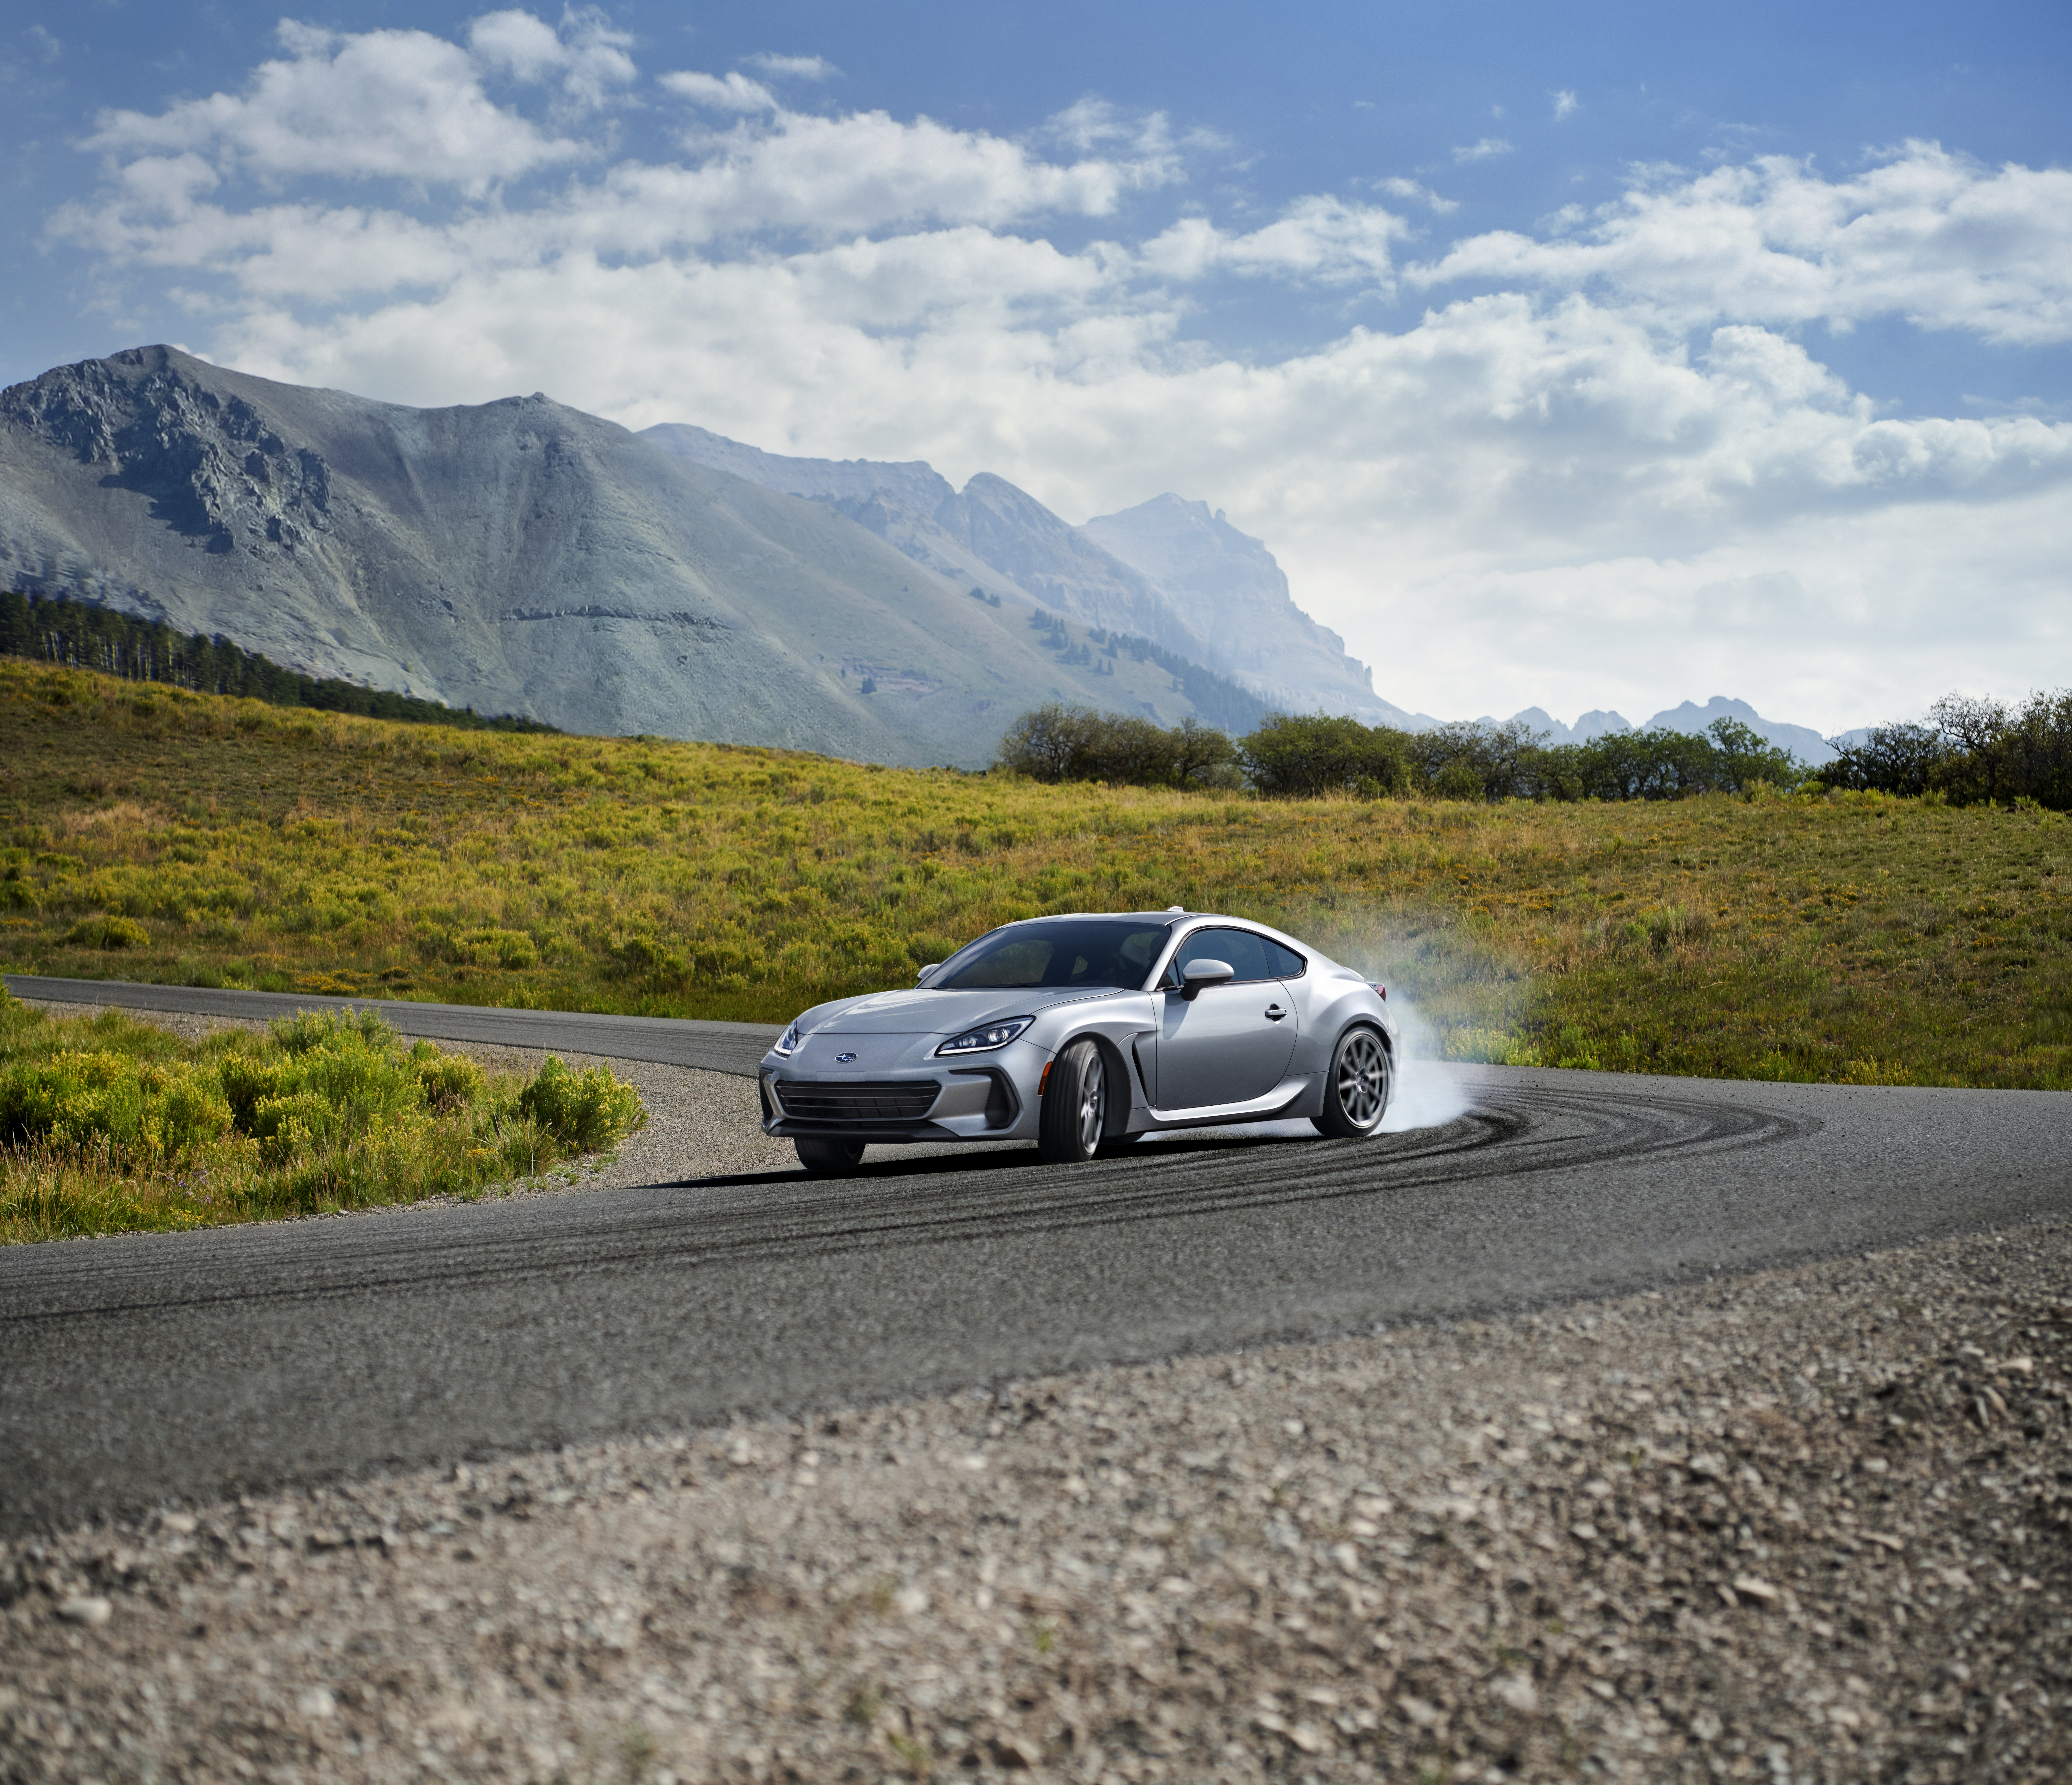 The all-new 2022 Subaru BRZ gets 23 more horsepower, better chassis rigidity, and a lower center of gravity without changing the core focus of the sports car